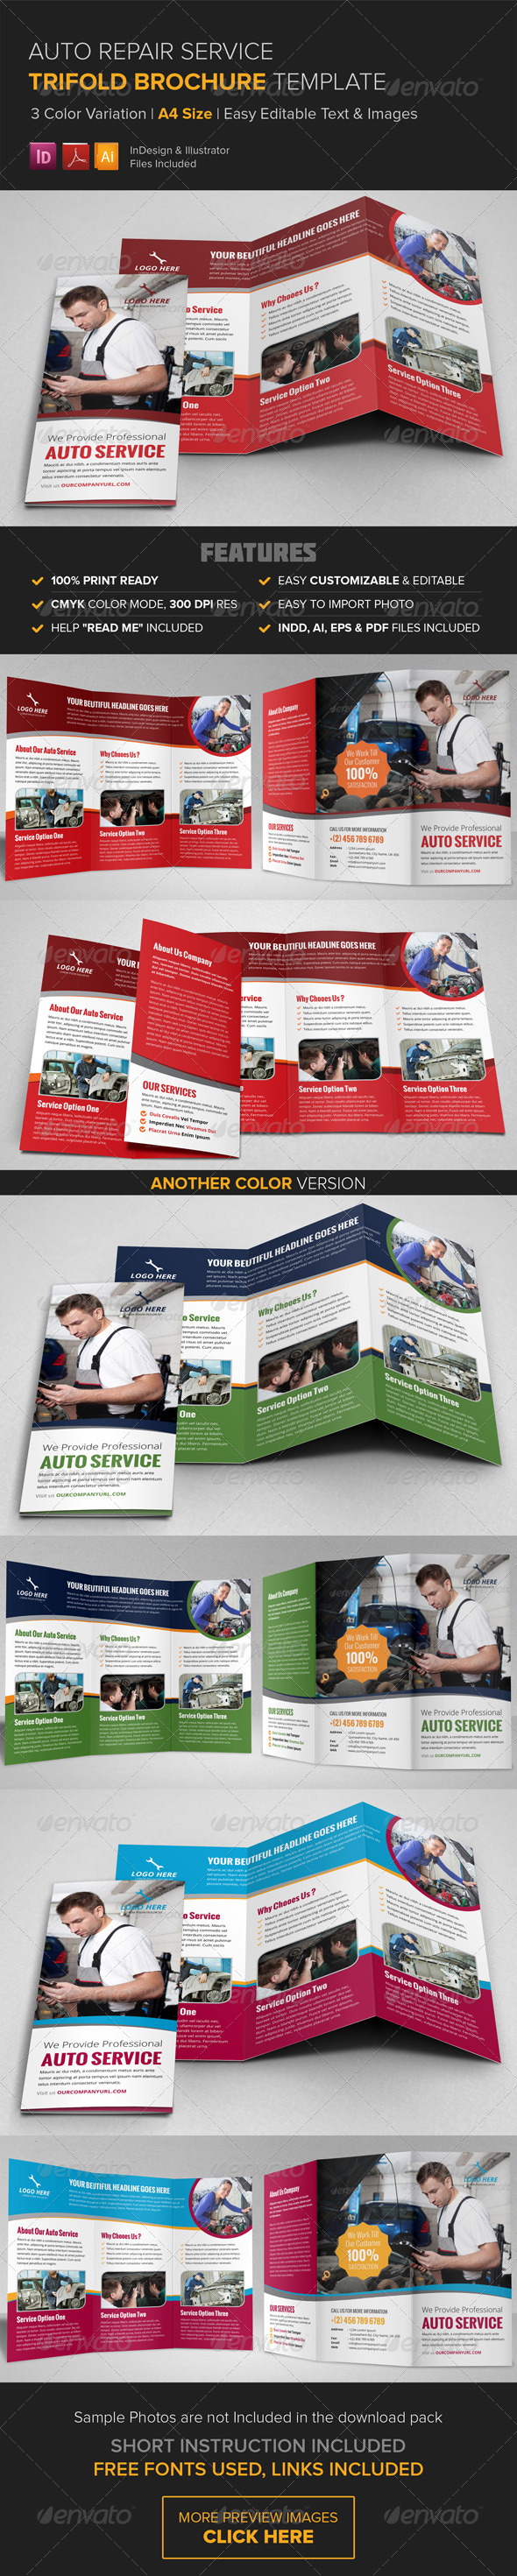 GraphicRiver Auto Repair Service Trifold Brochure Template 8752348